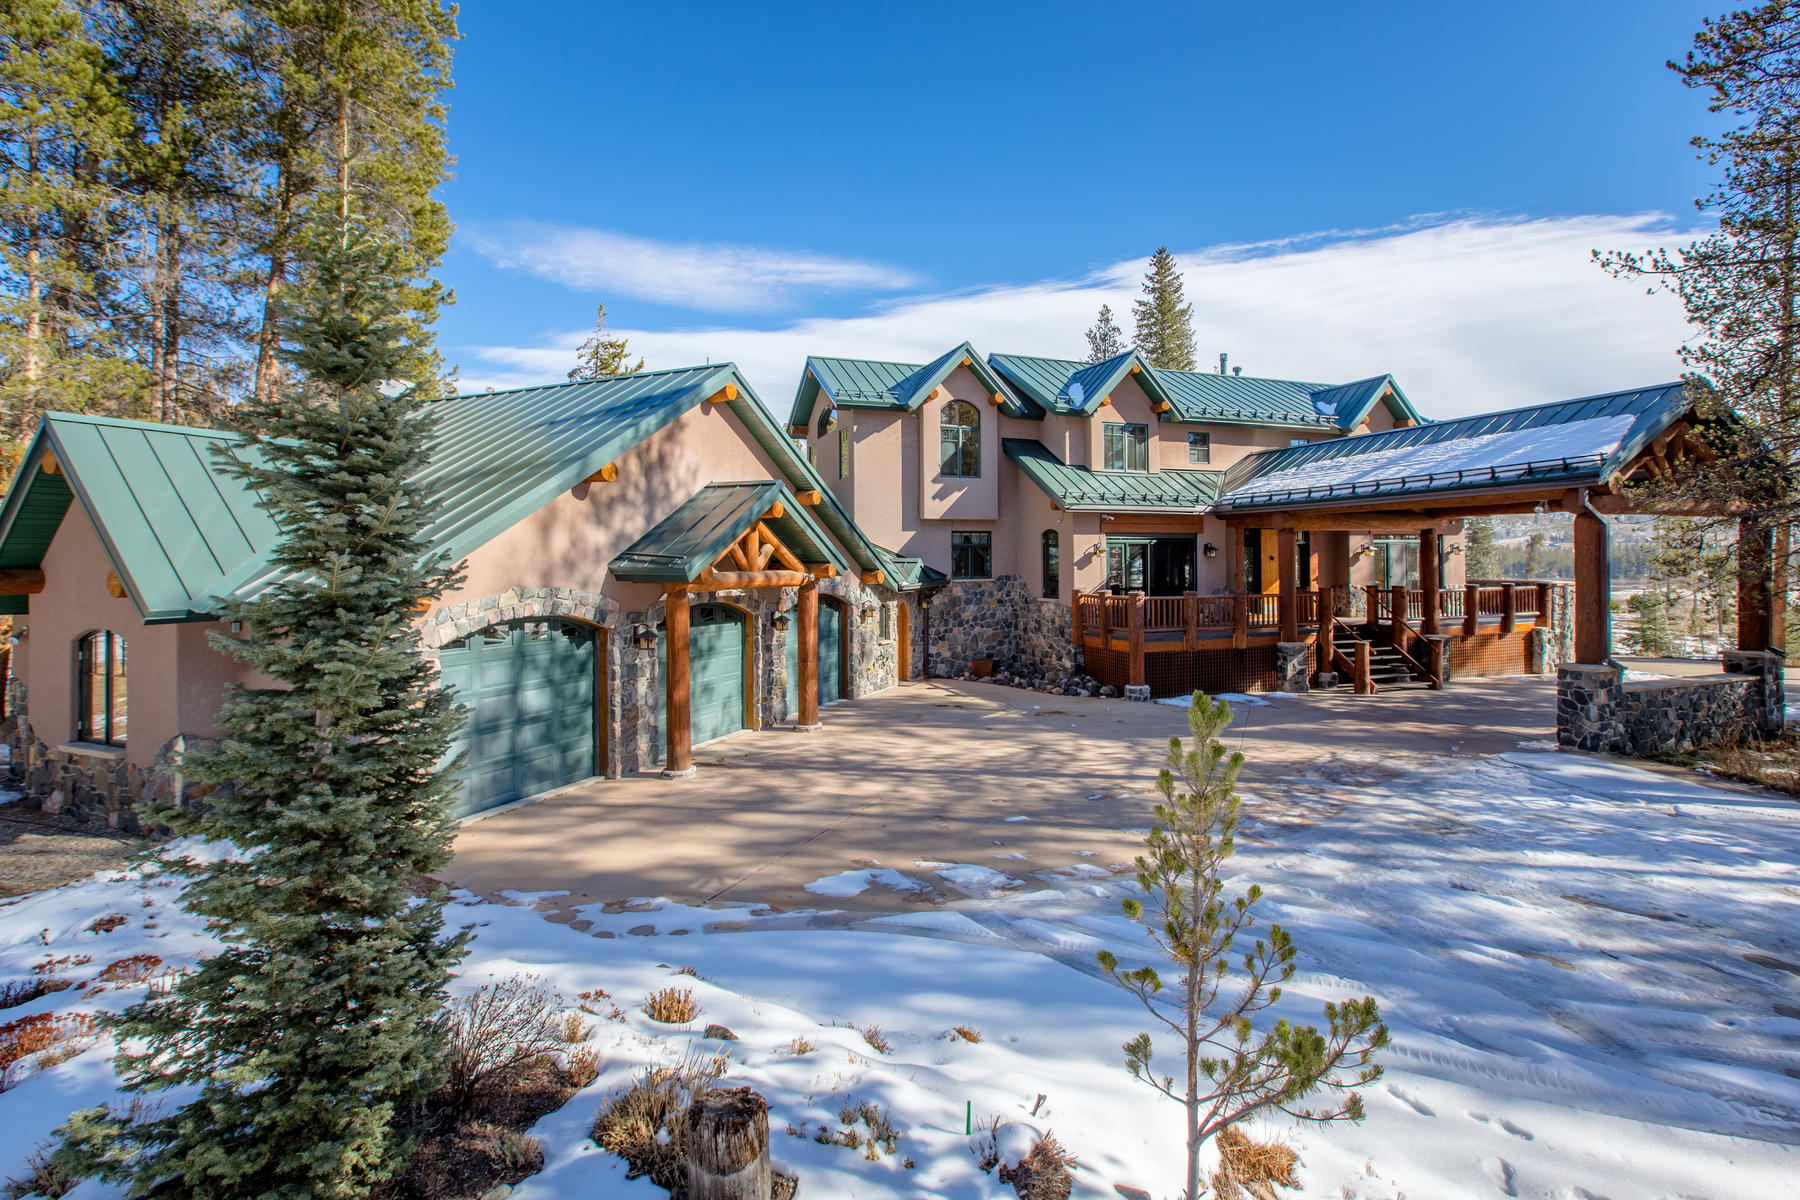 Single Family Home for Active at Enjoy mountain lifestyle with this stunning custom home nestled on 3.23 acres! 25 Browsing Meadow Fraser, Colorado 80442 United States